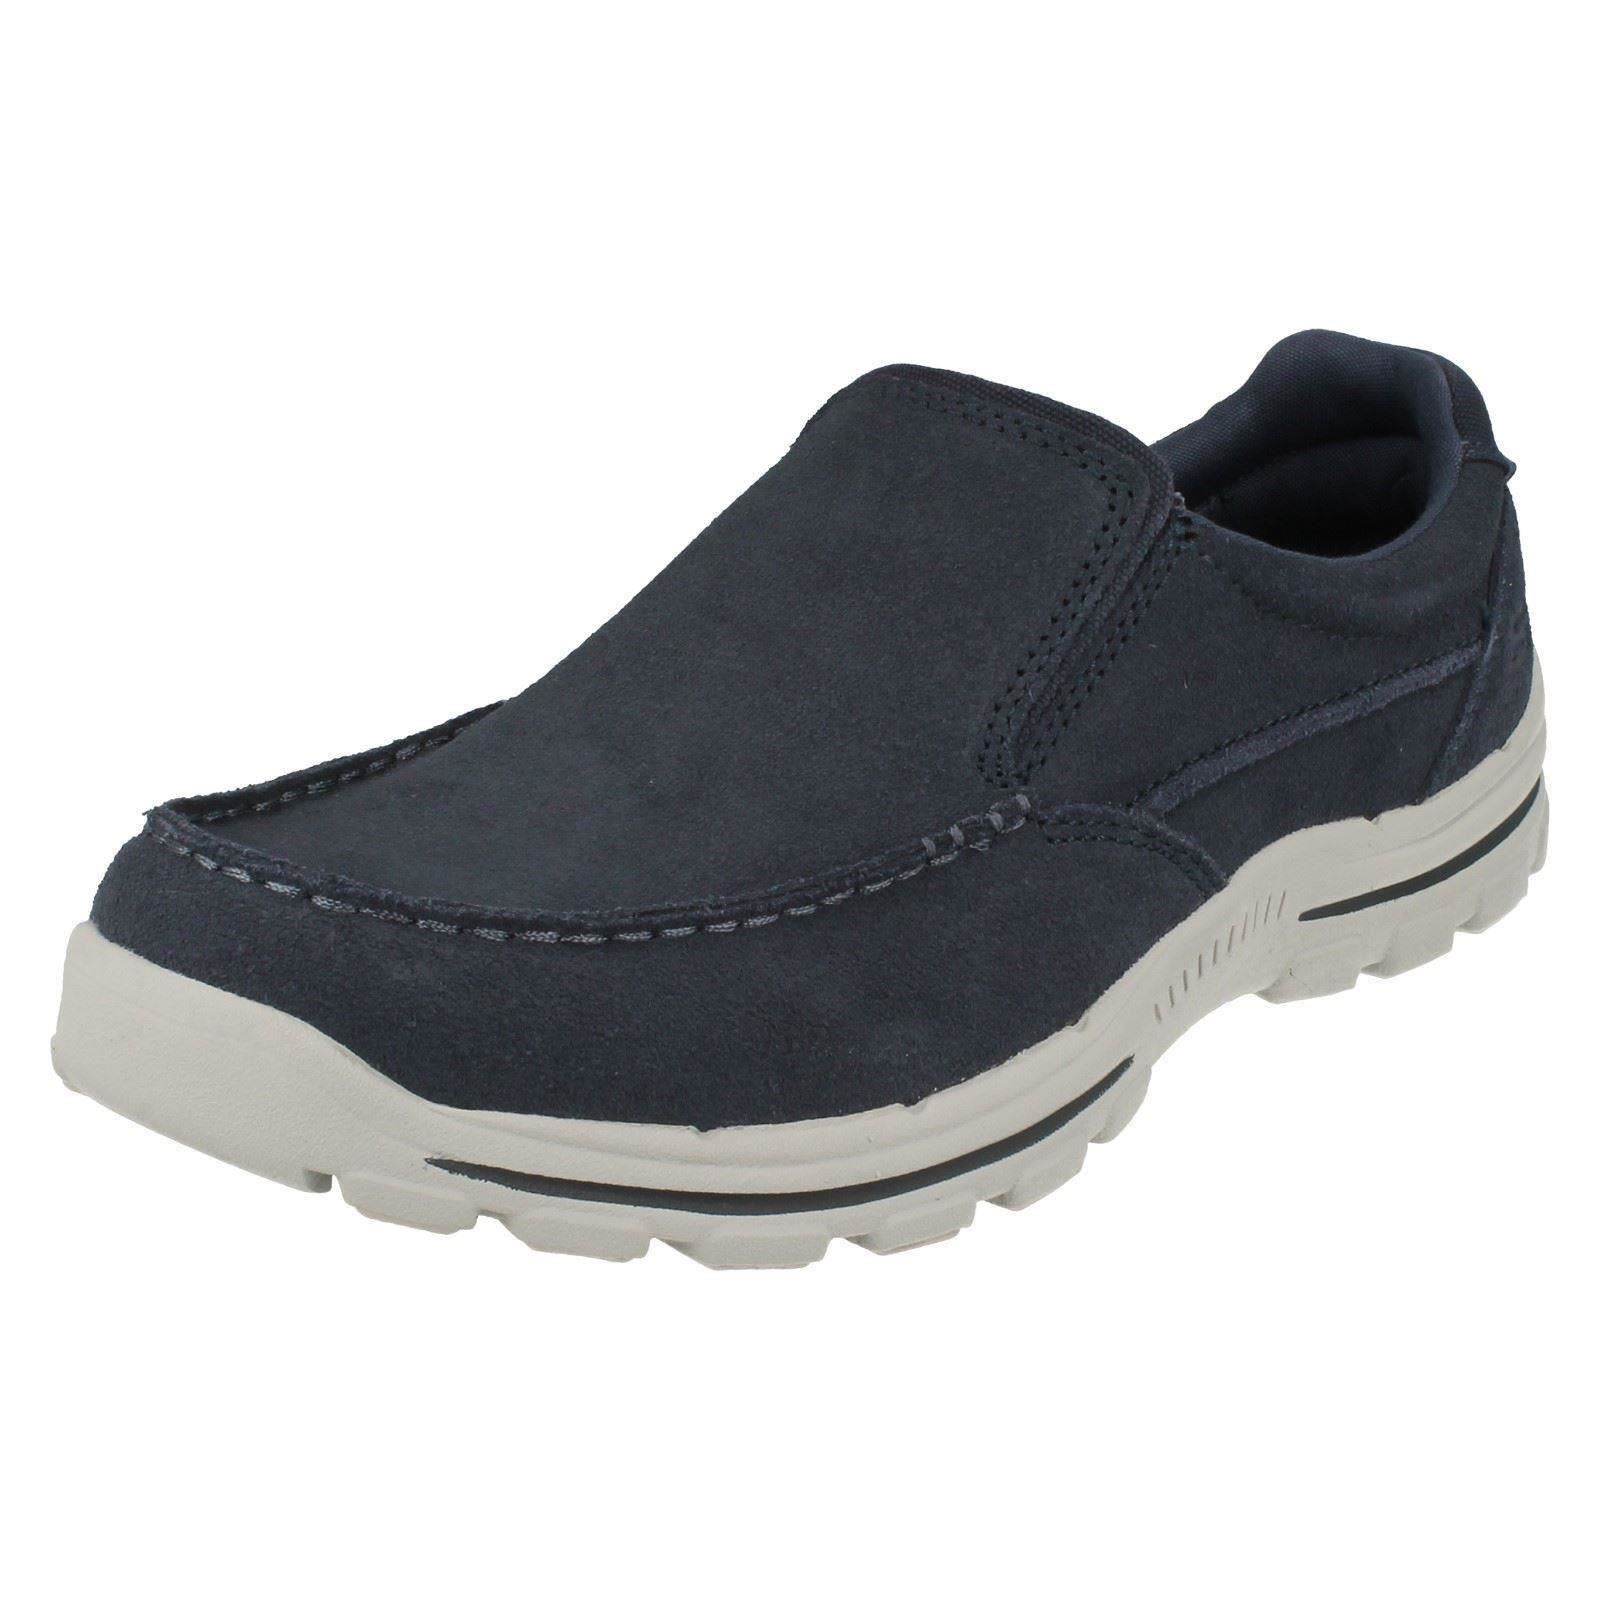 Mens Skechers Trainer/Loafer Casual Shoes 'Braver Navid' Great discount